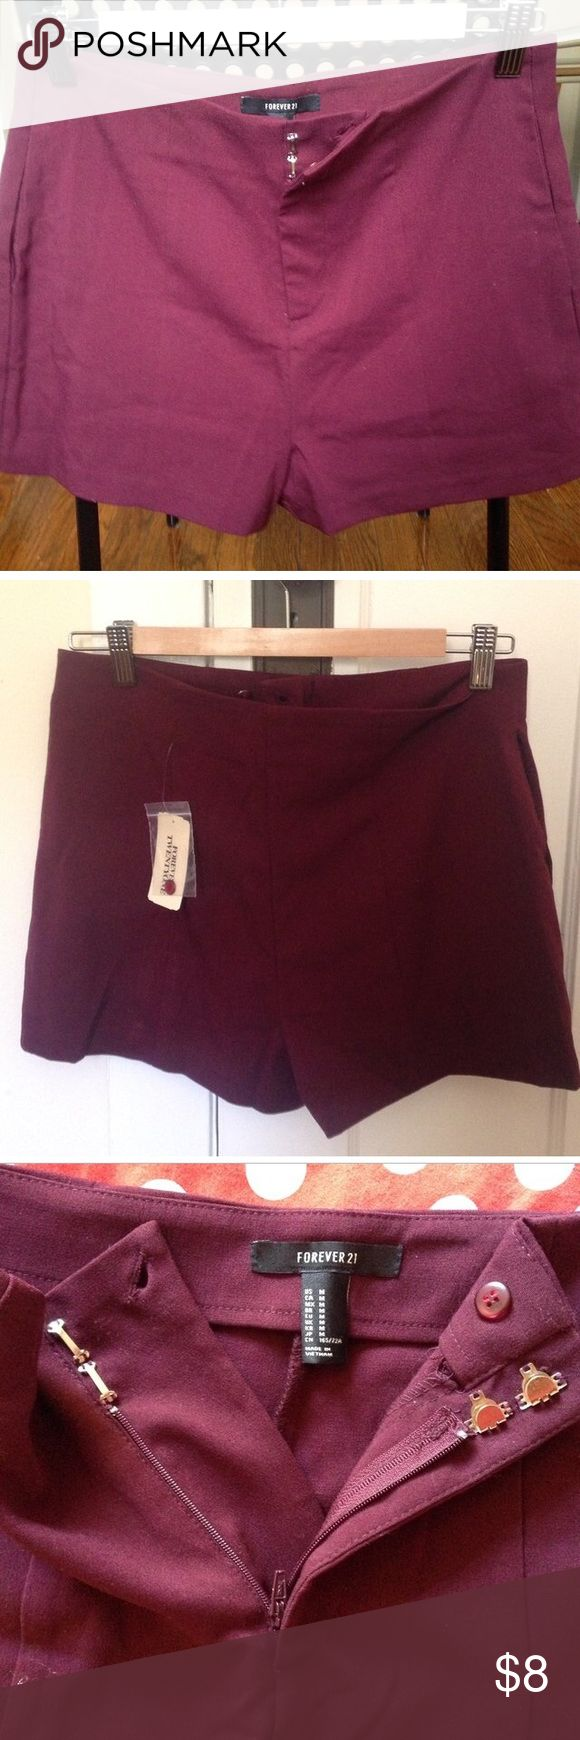 Forever 21 Burgundy shorts. Burgundy shorts from Forever 21. New with tags Forever 21 Shorts